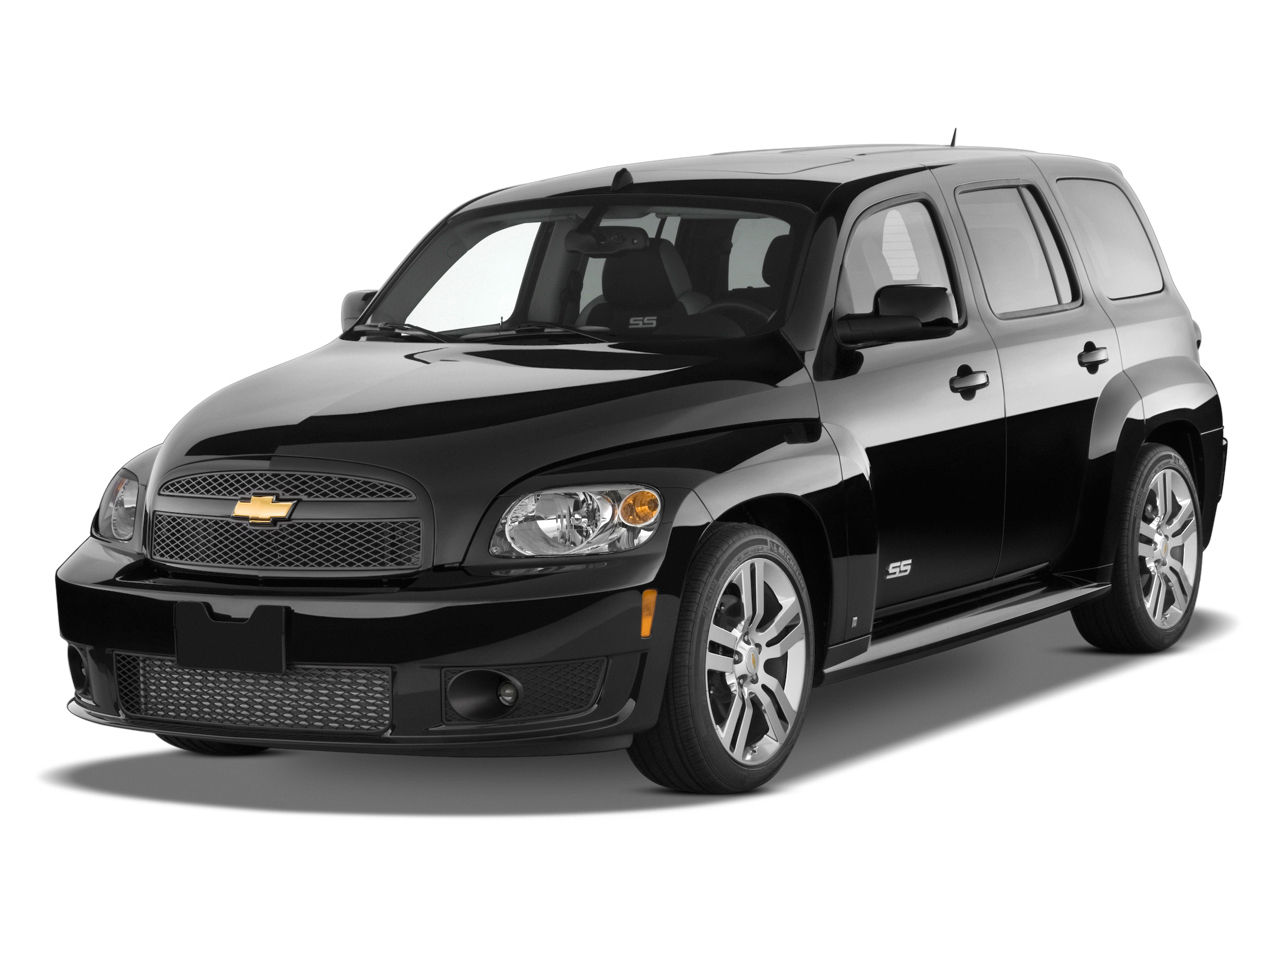 2010 Chevrolet Hhr Chevy Review Ratings Specs Prices And